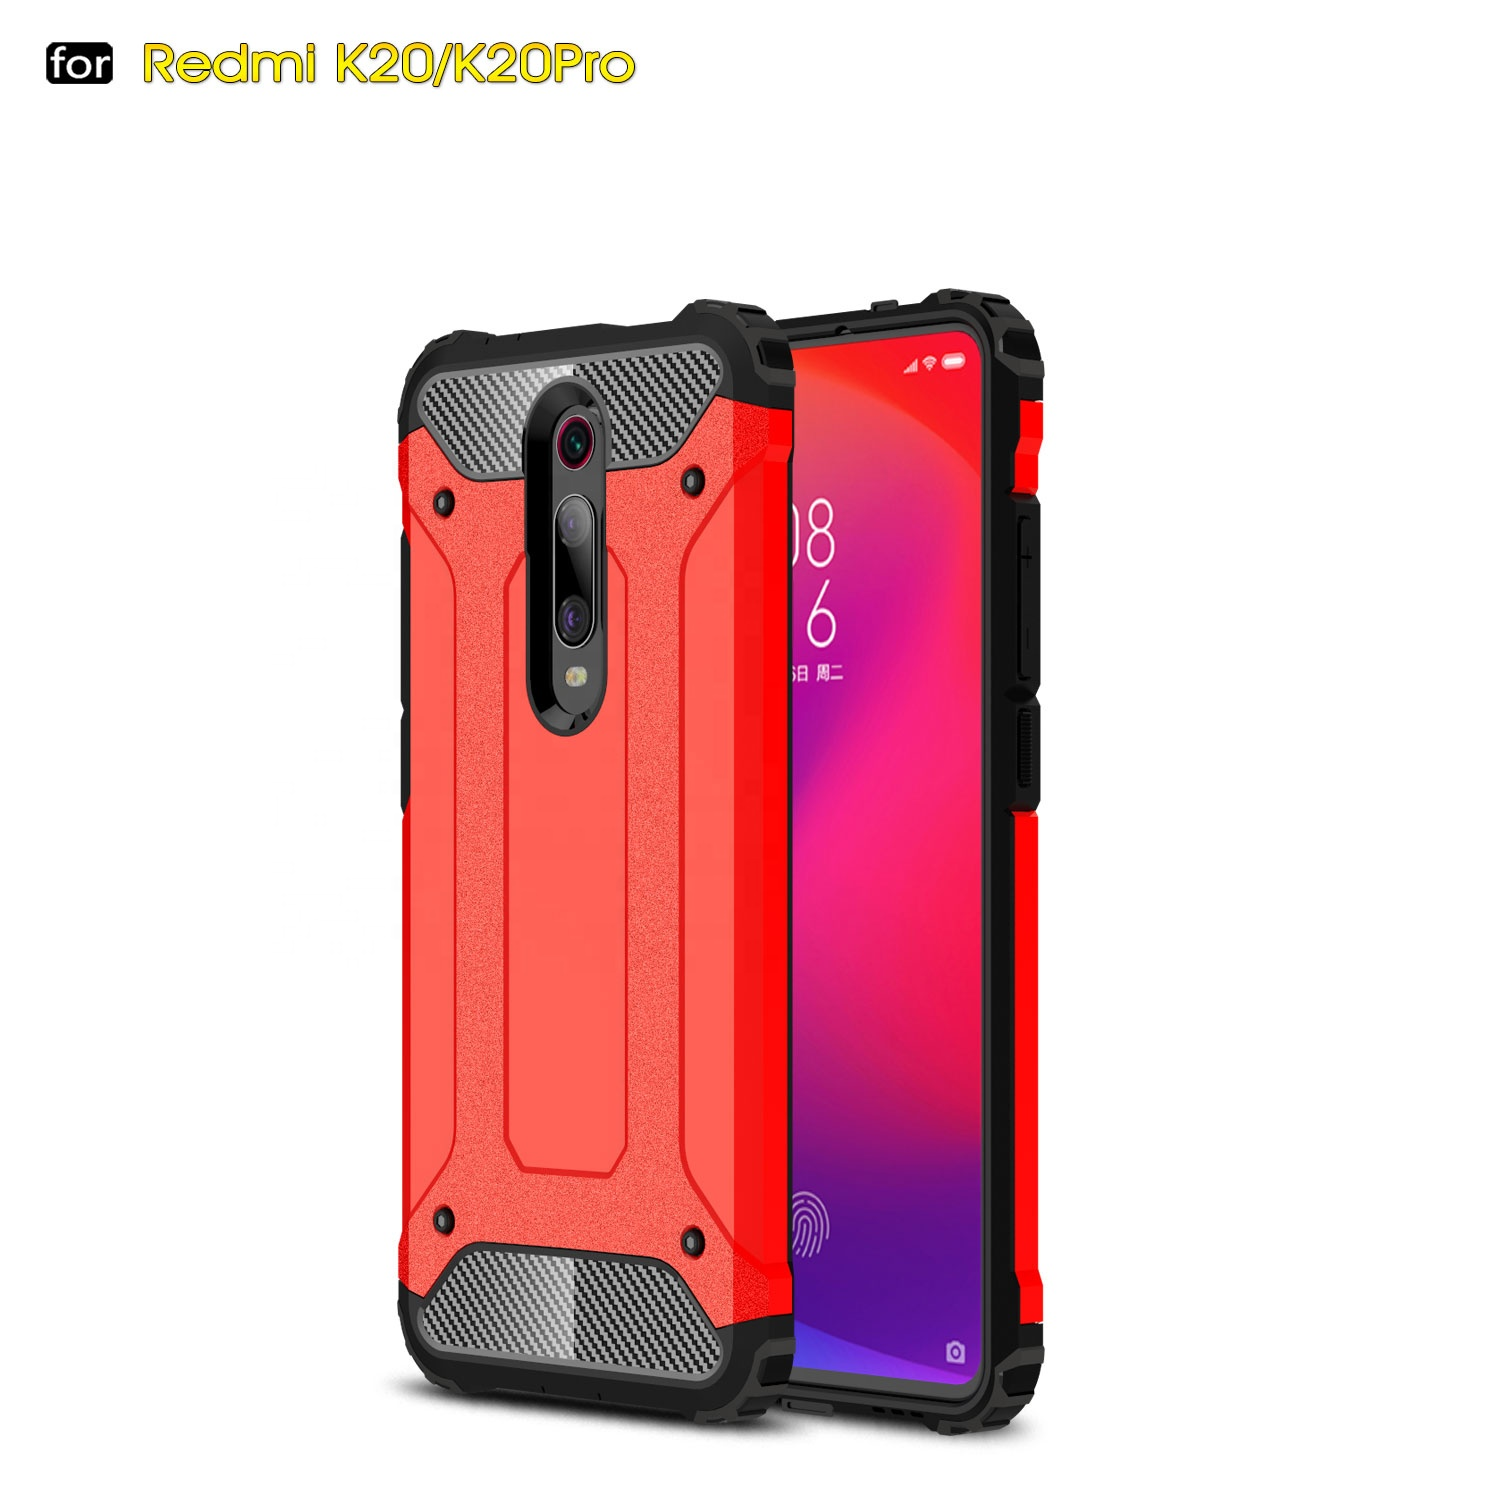 Armour case for Xiaomi Redmi K20pro/Mi 9T soft TPU+PC cell phone cases shockproof back cover <strong>2</strong> in1 for Redmi Note7pro wholesales